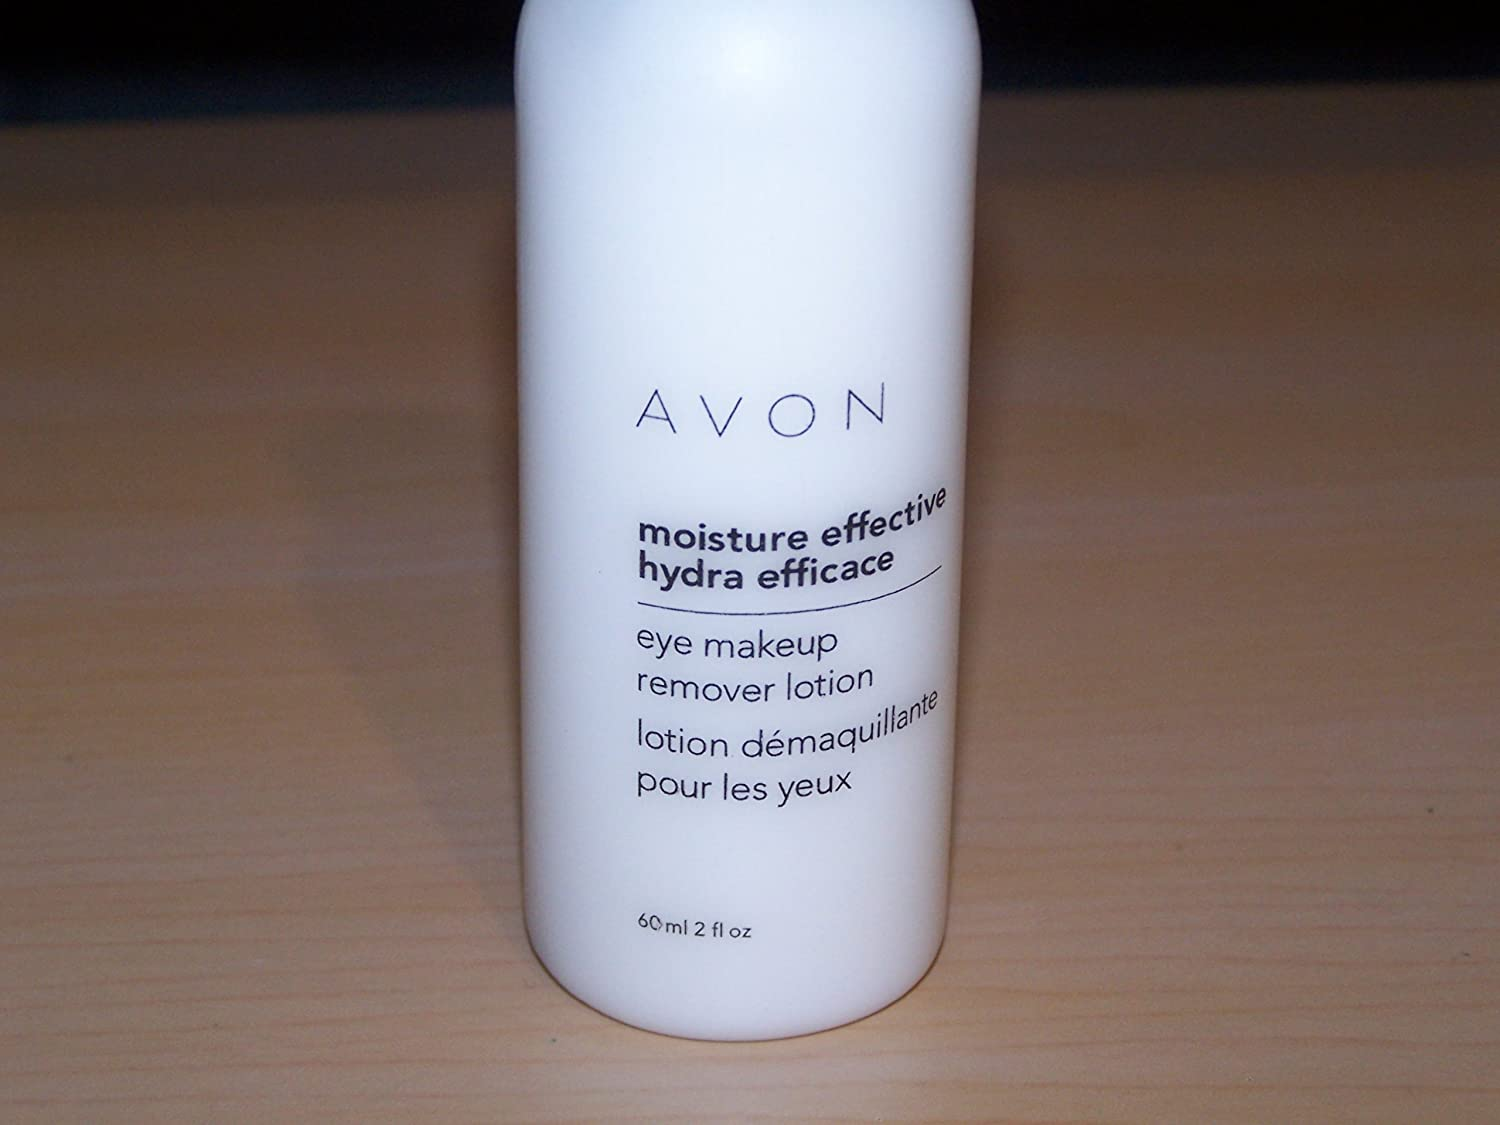 Avon Moisture Effective Eye Makeup Remover Lotion, 2 Fl Oz Avon eye makeup remover